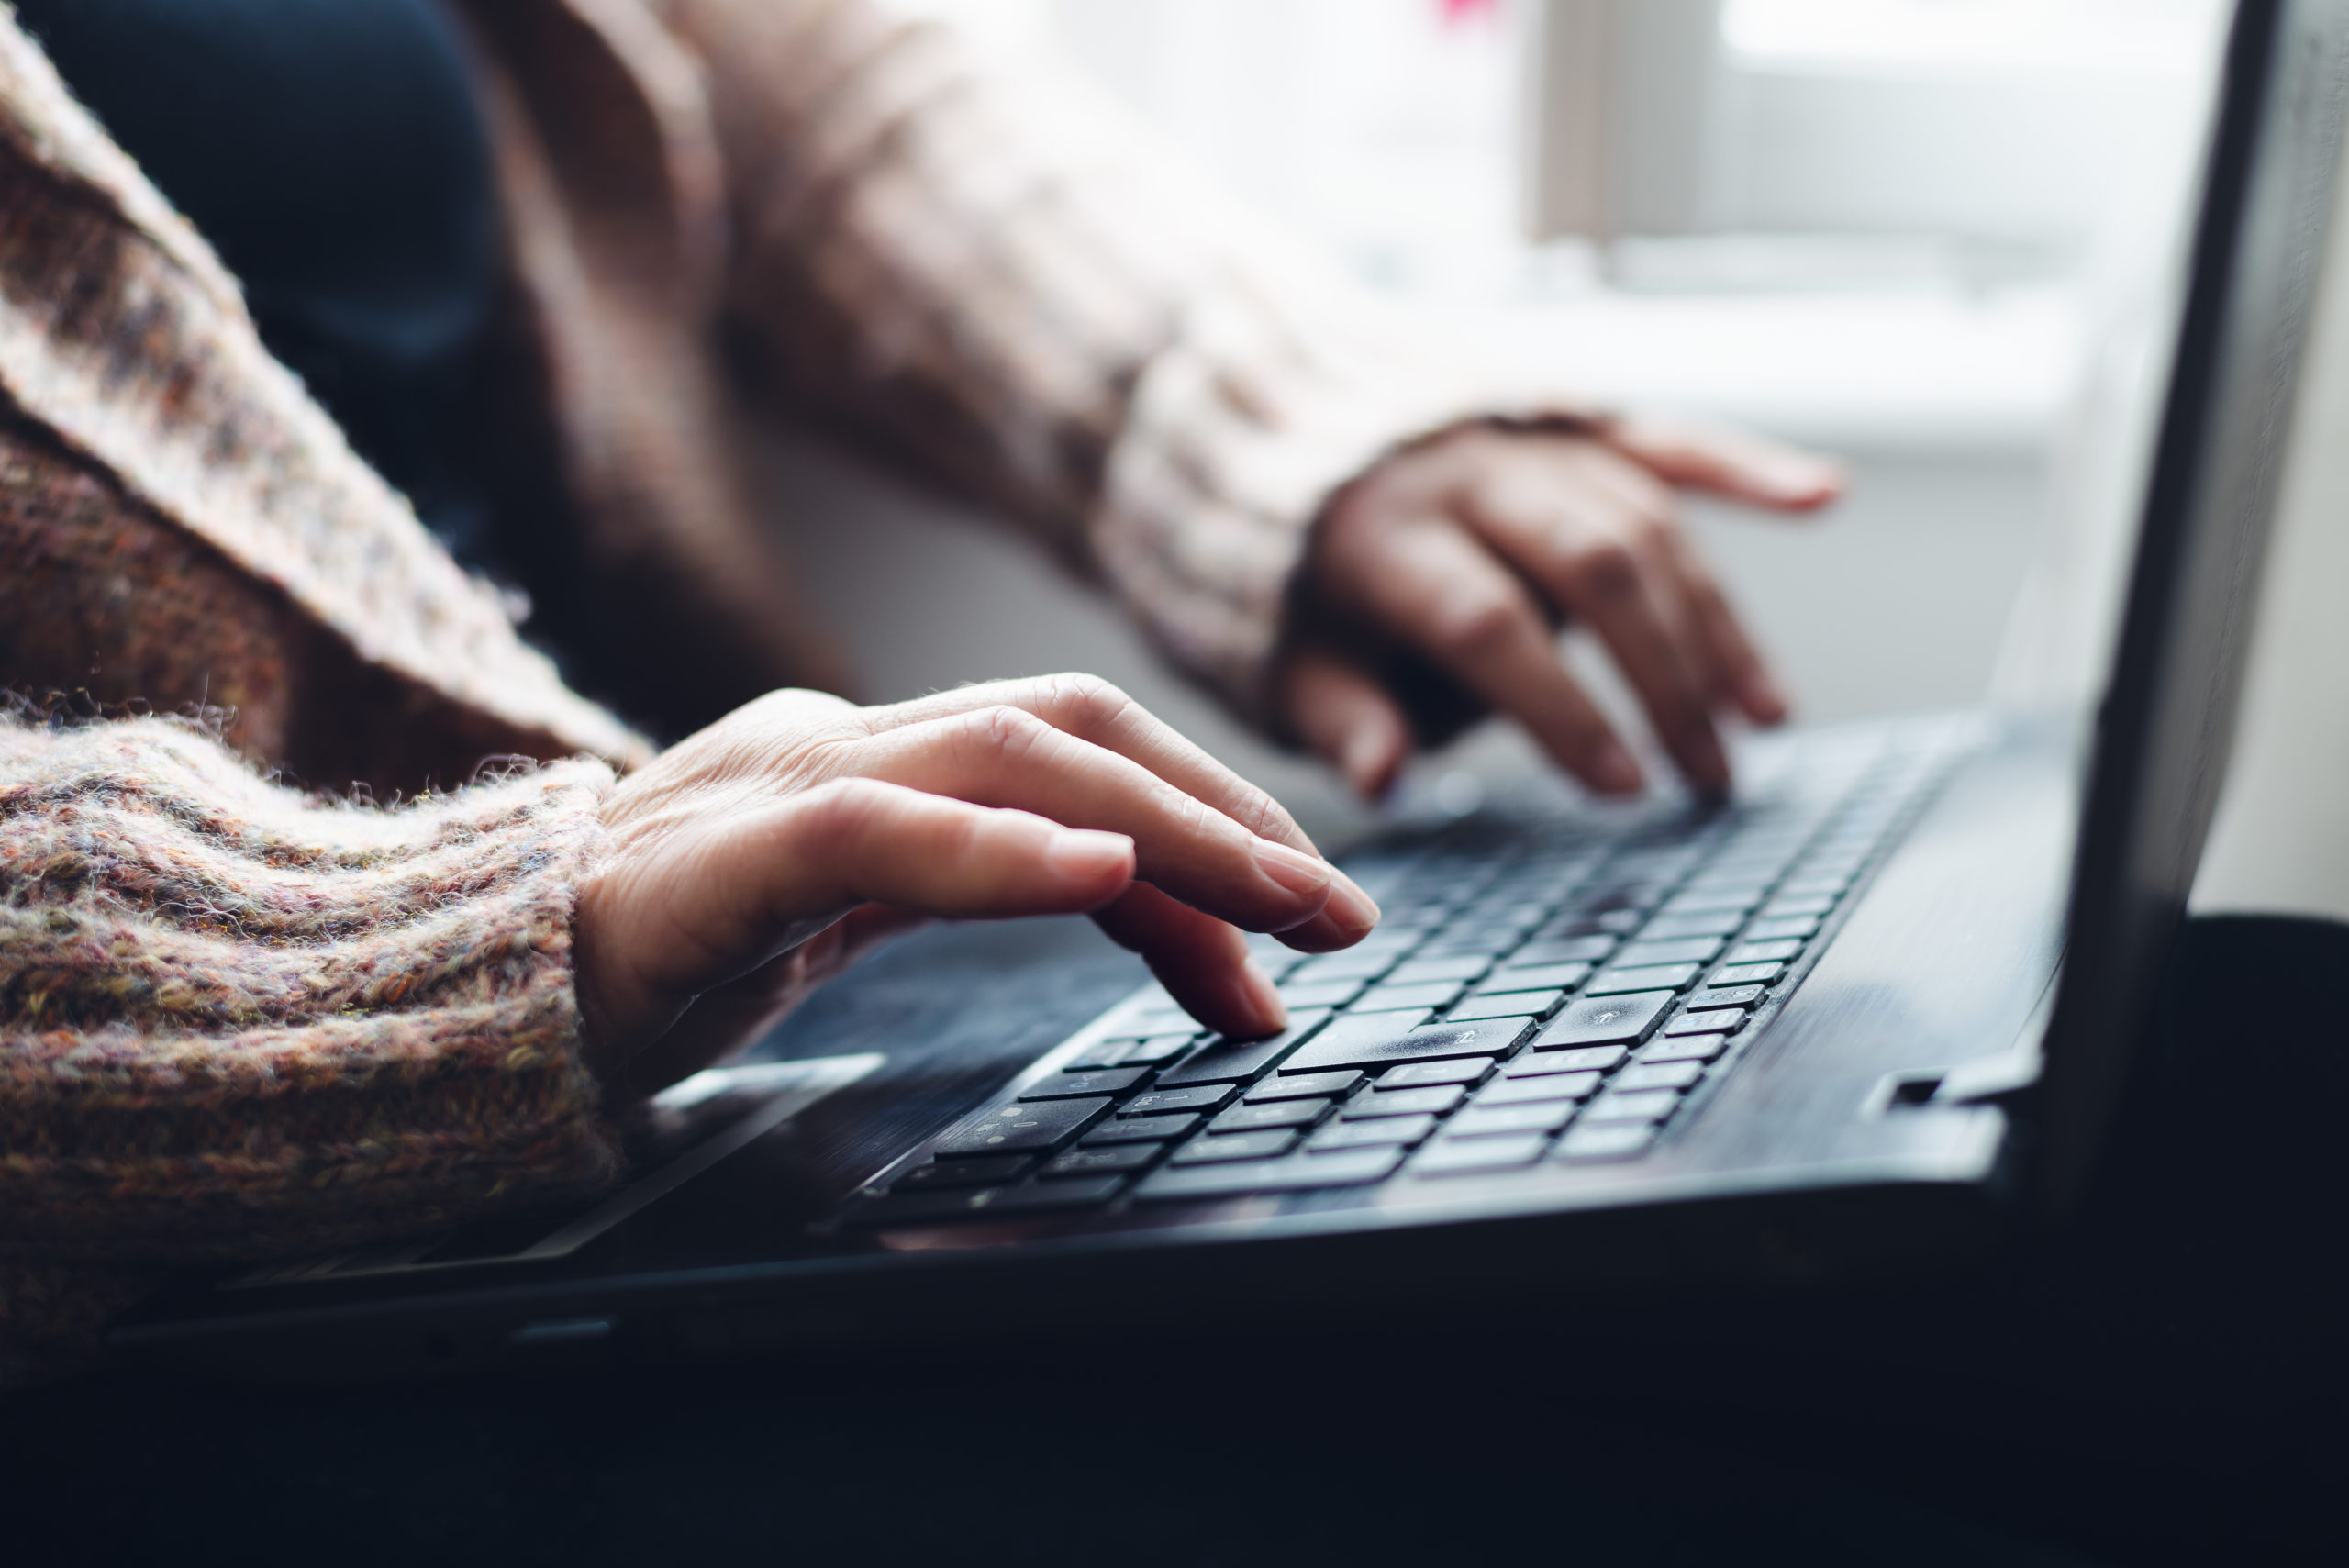 A woman working on a laptop, the photo is cropped so you can only see her hands and the laptop.